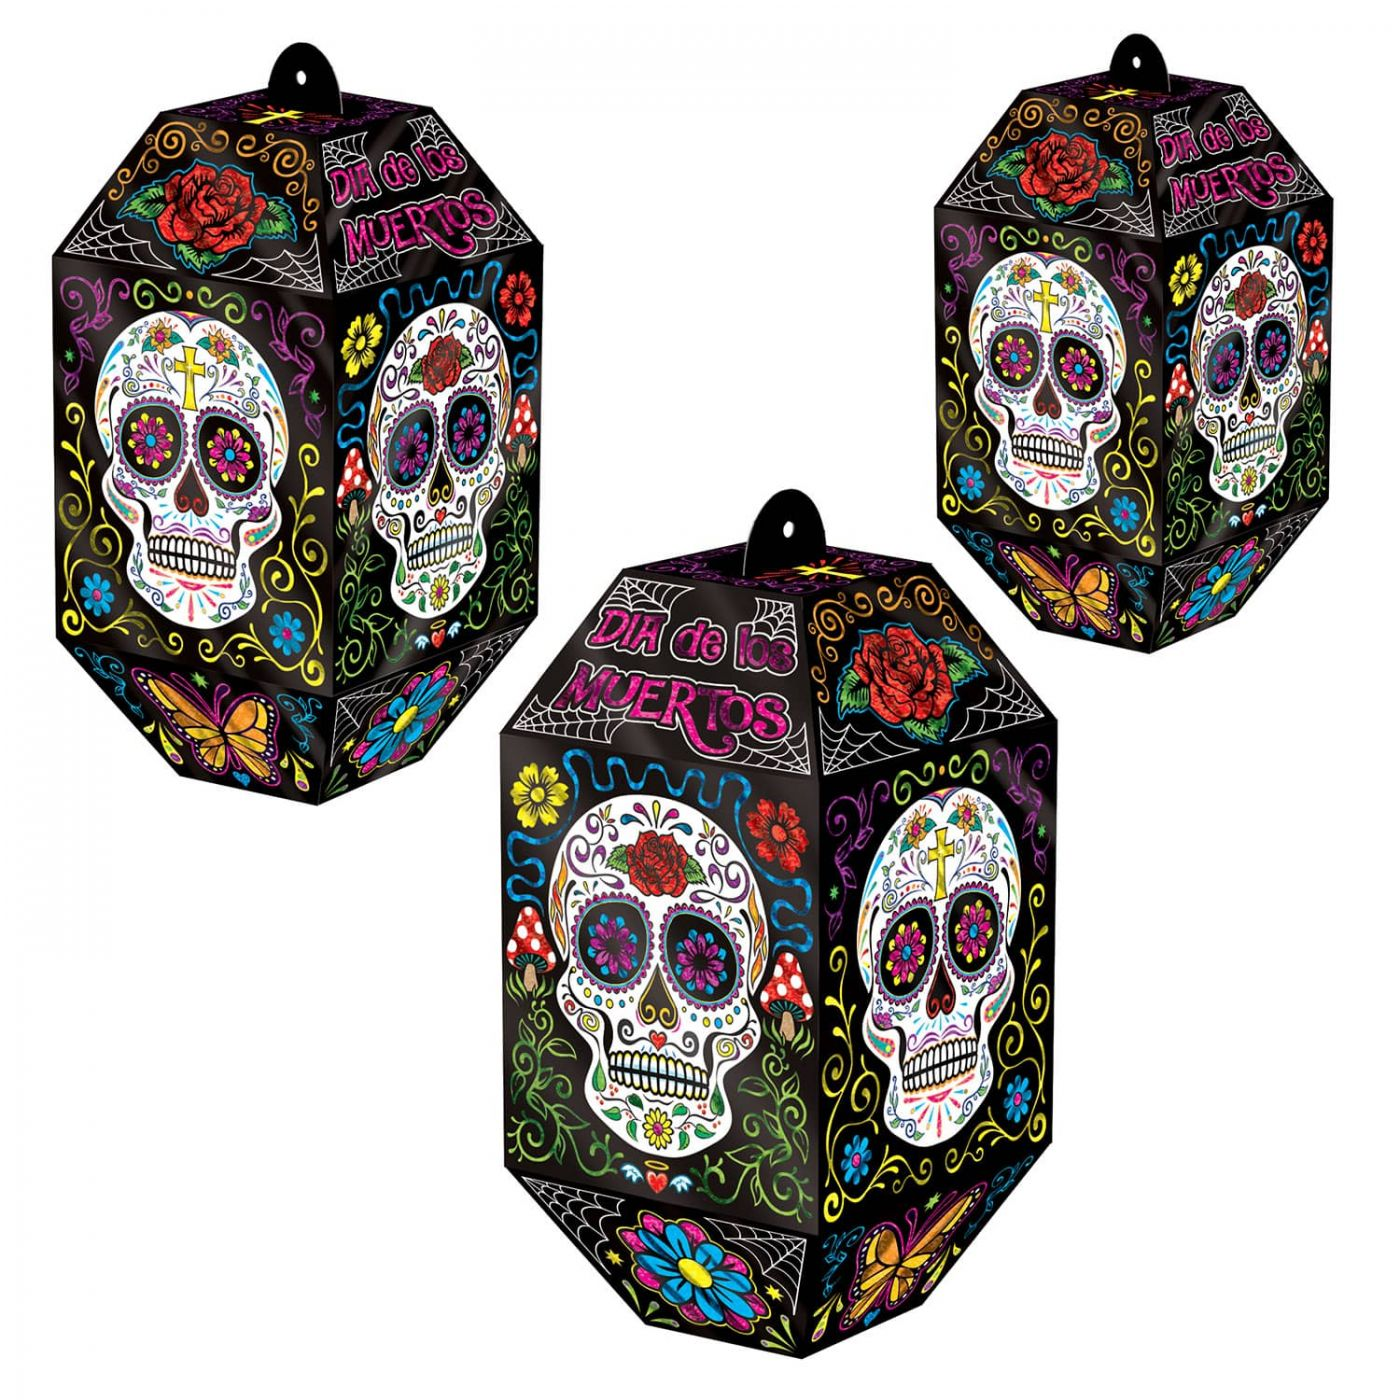 Foil Day Of The Dead Paper Lanterns image